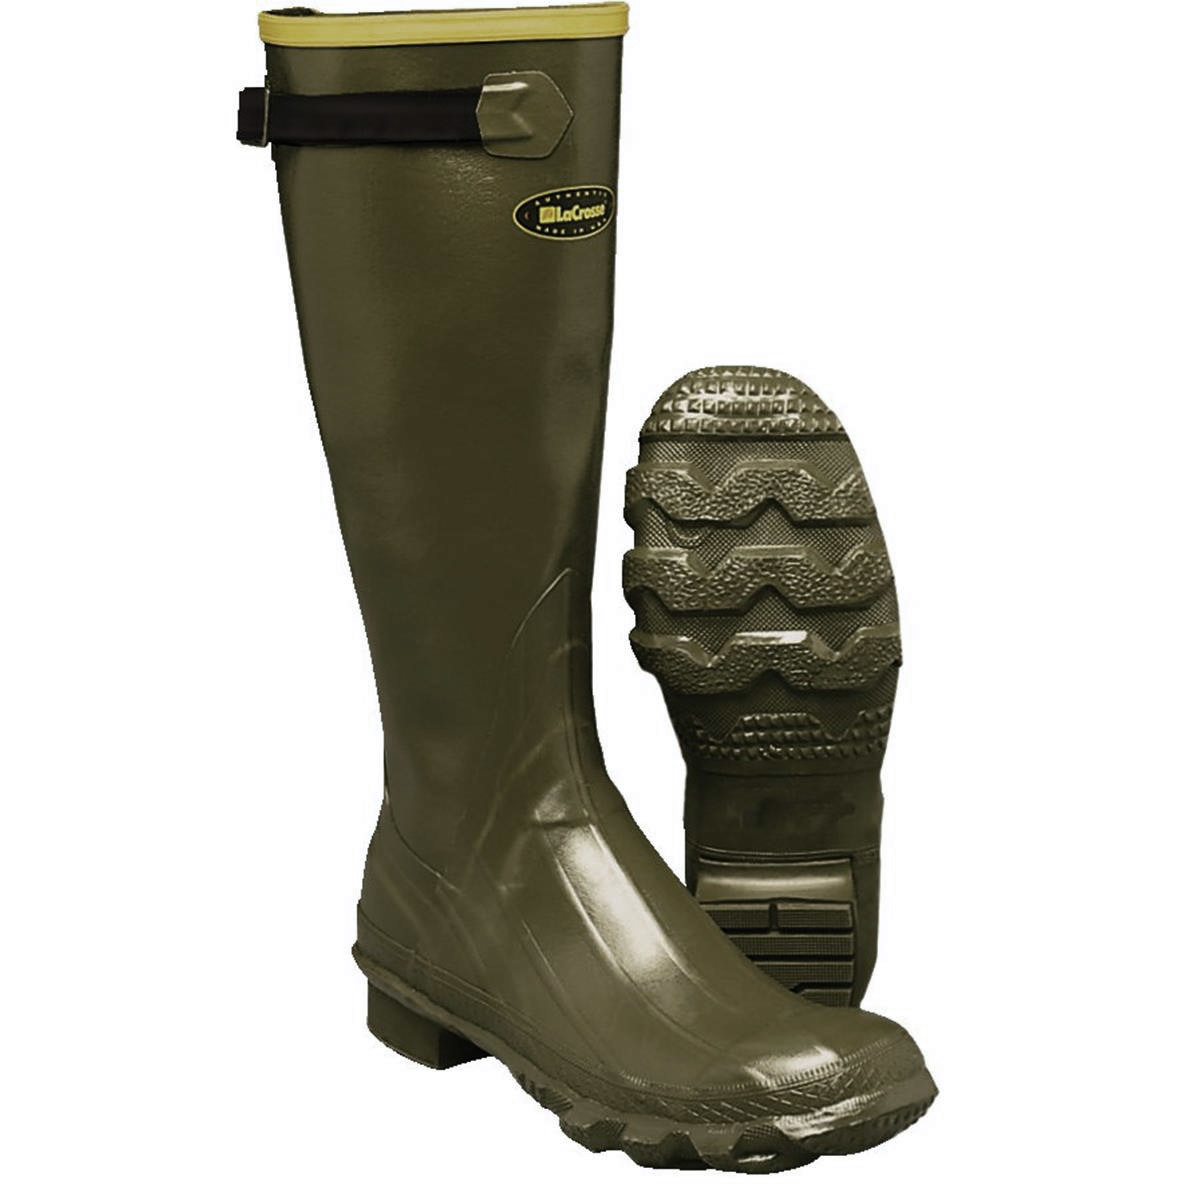 "a pair of LaCrosse Men's Grange 18"" Waterproof Hunting Boot"